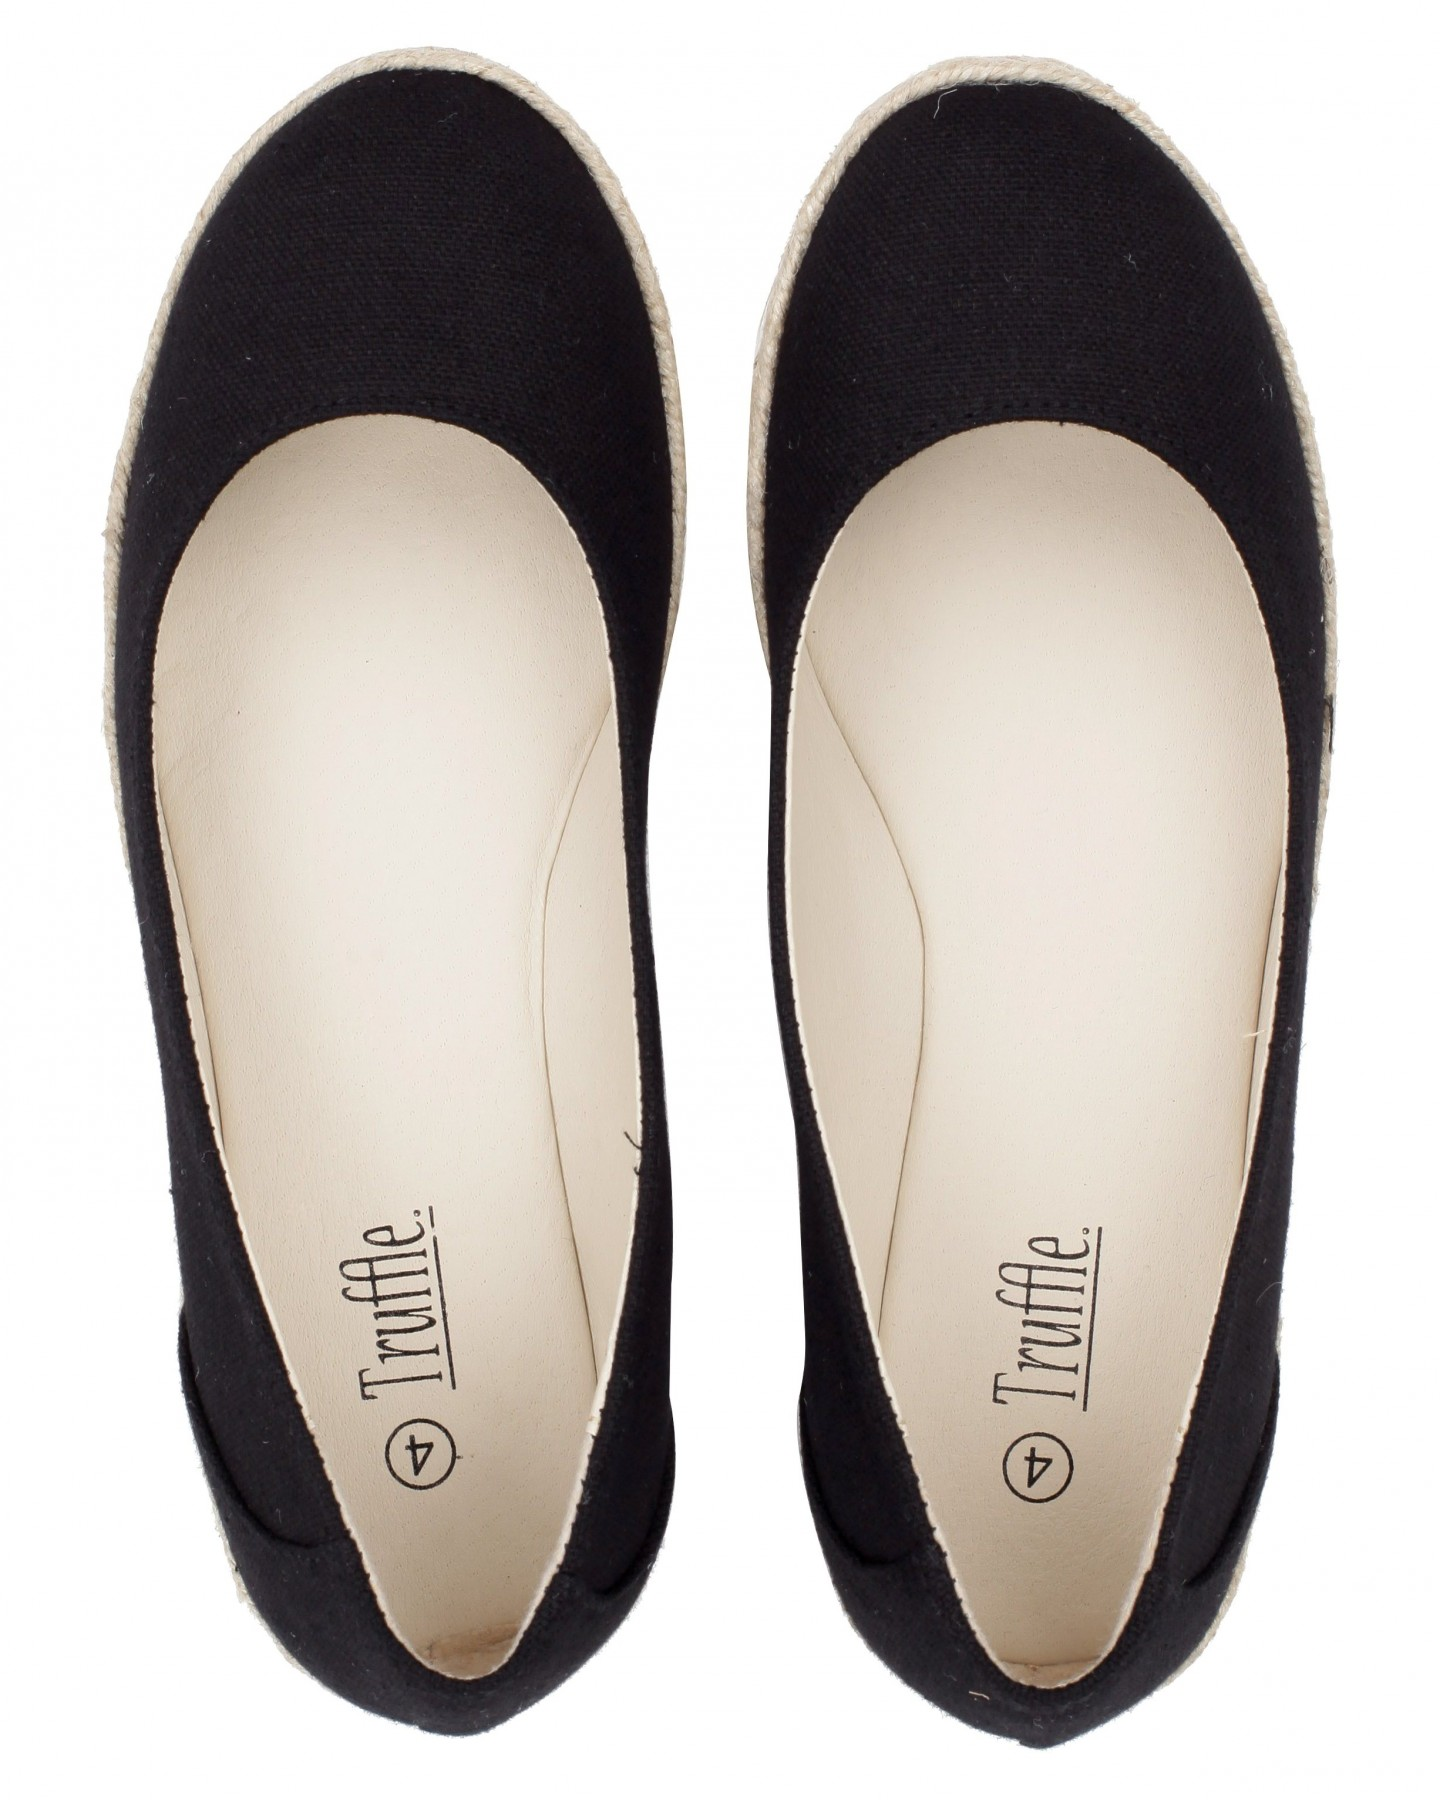 Blue-Inc-Womens-Plain-Canvas-Ballet-Pumps-Black